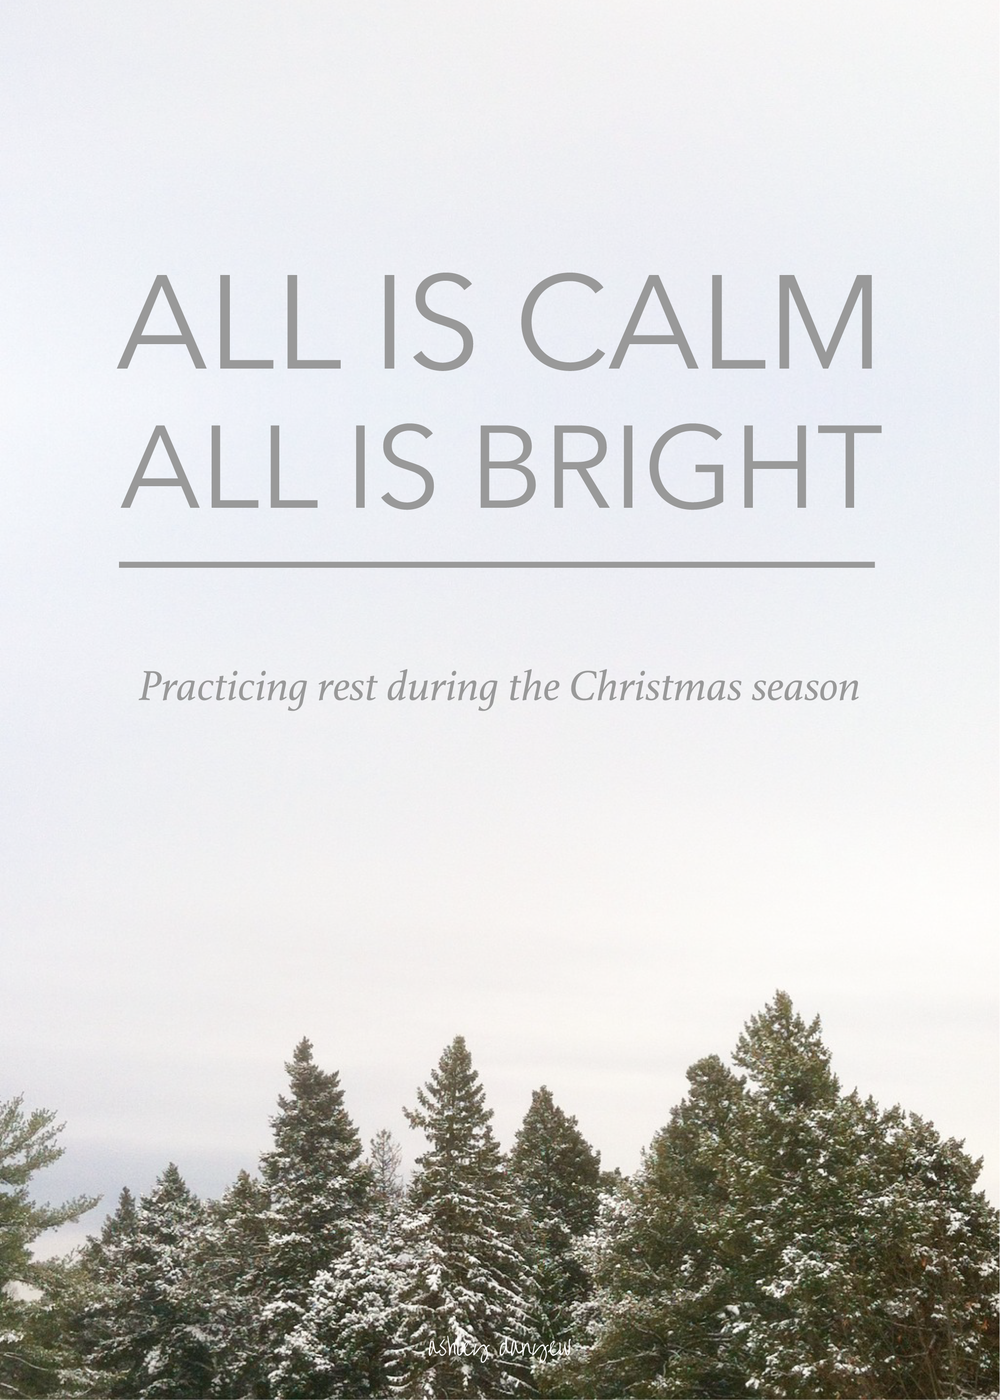 Copy of All Is Calm, All Is Bright: Practicing Rest During the Christmas Season